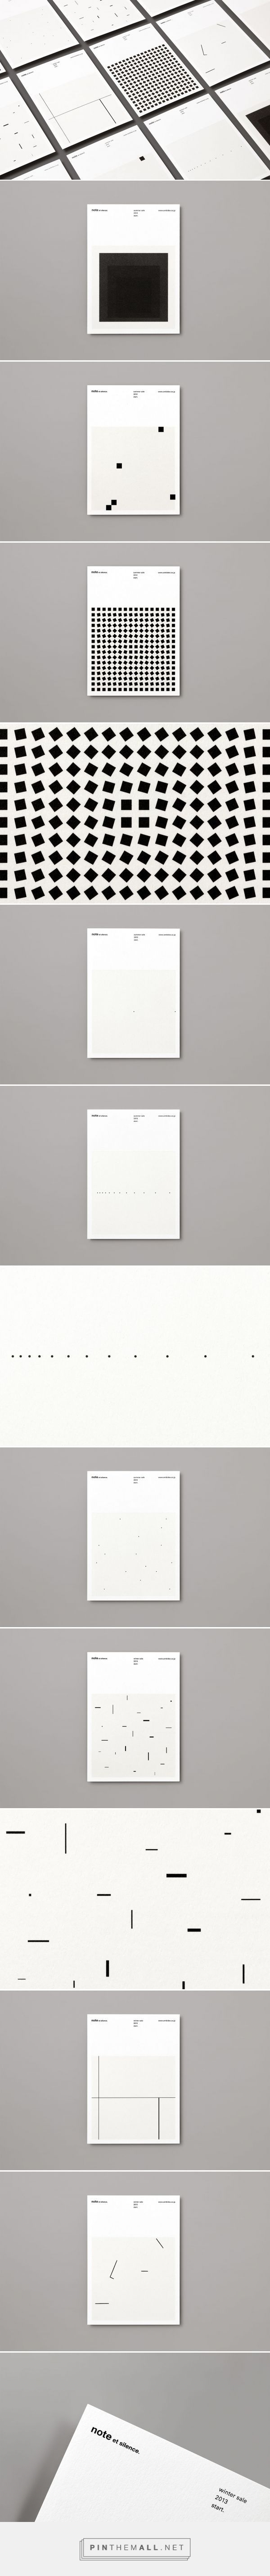 #print #design #layout ©️️ Makoto Kamimura - note et silence. - created via https://pinthemall.net